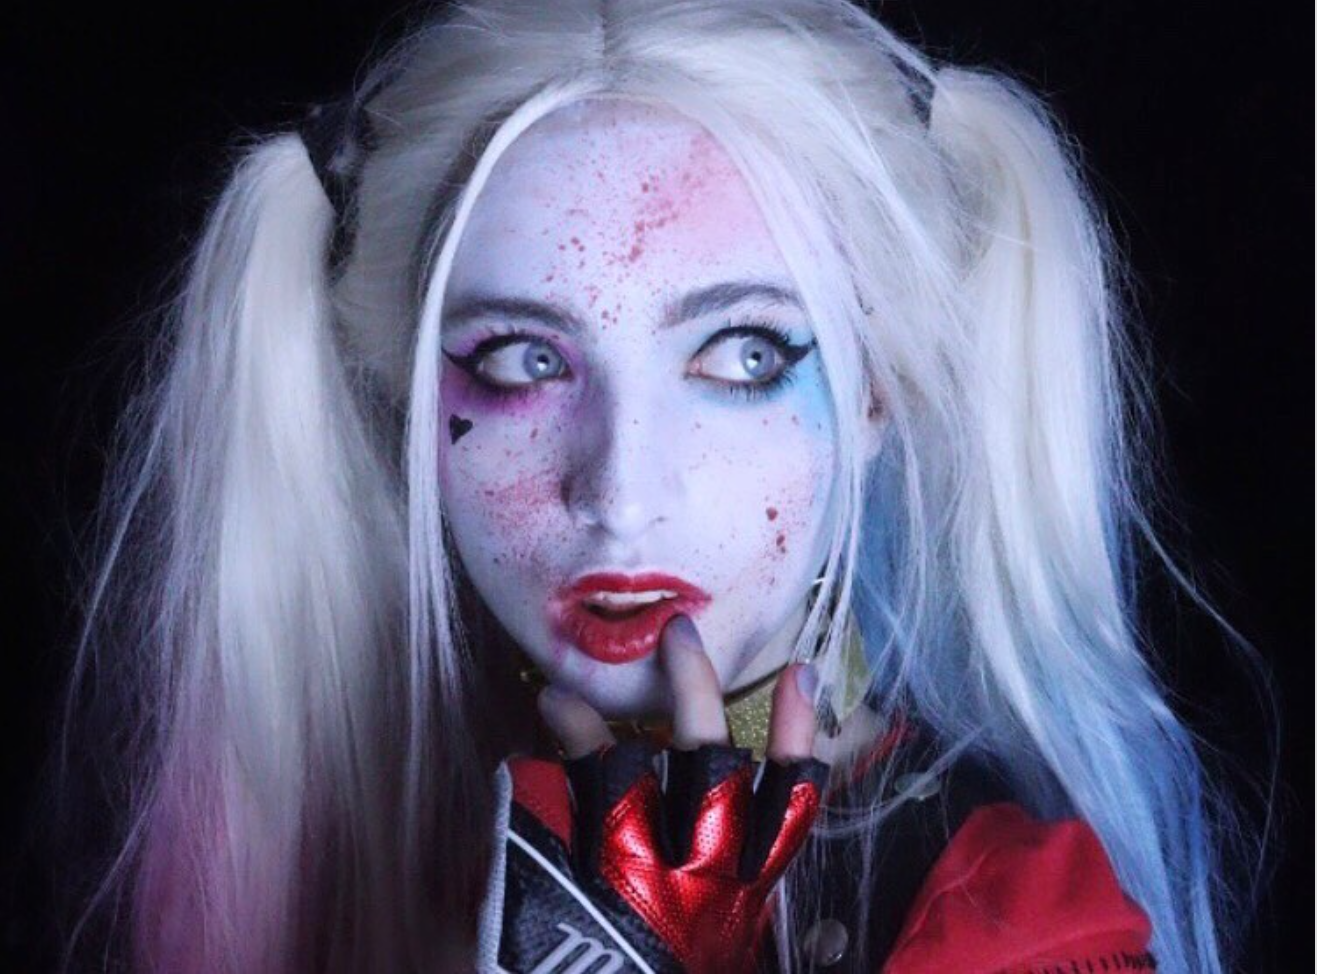 A woman is dressed in white clown makeup and pigtails as part of her Halloween costume.